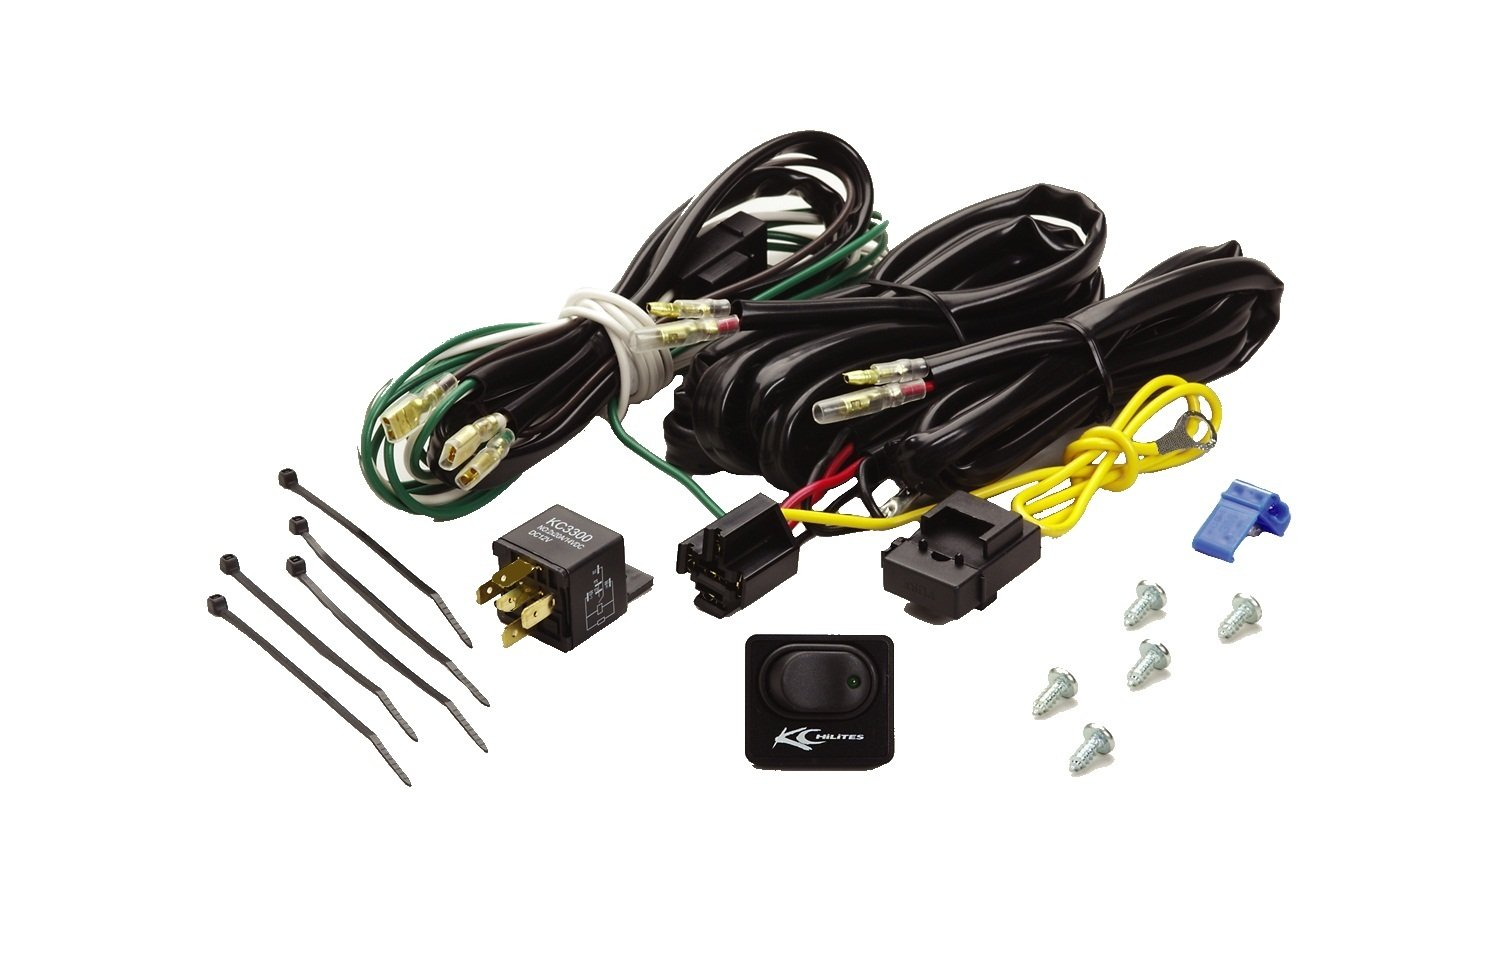 Amazon.com: KC HiLiTES 6315 Wiring Harness with 40 Amp Relay and ...